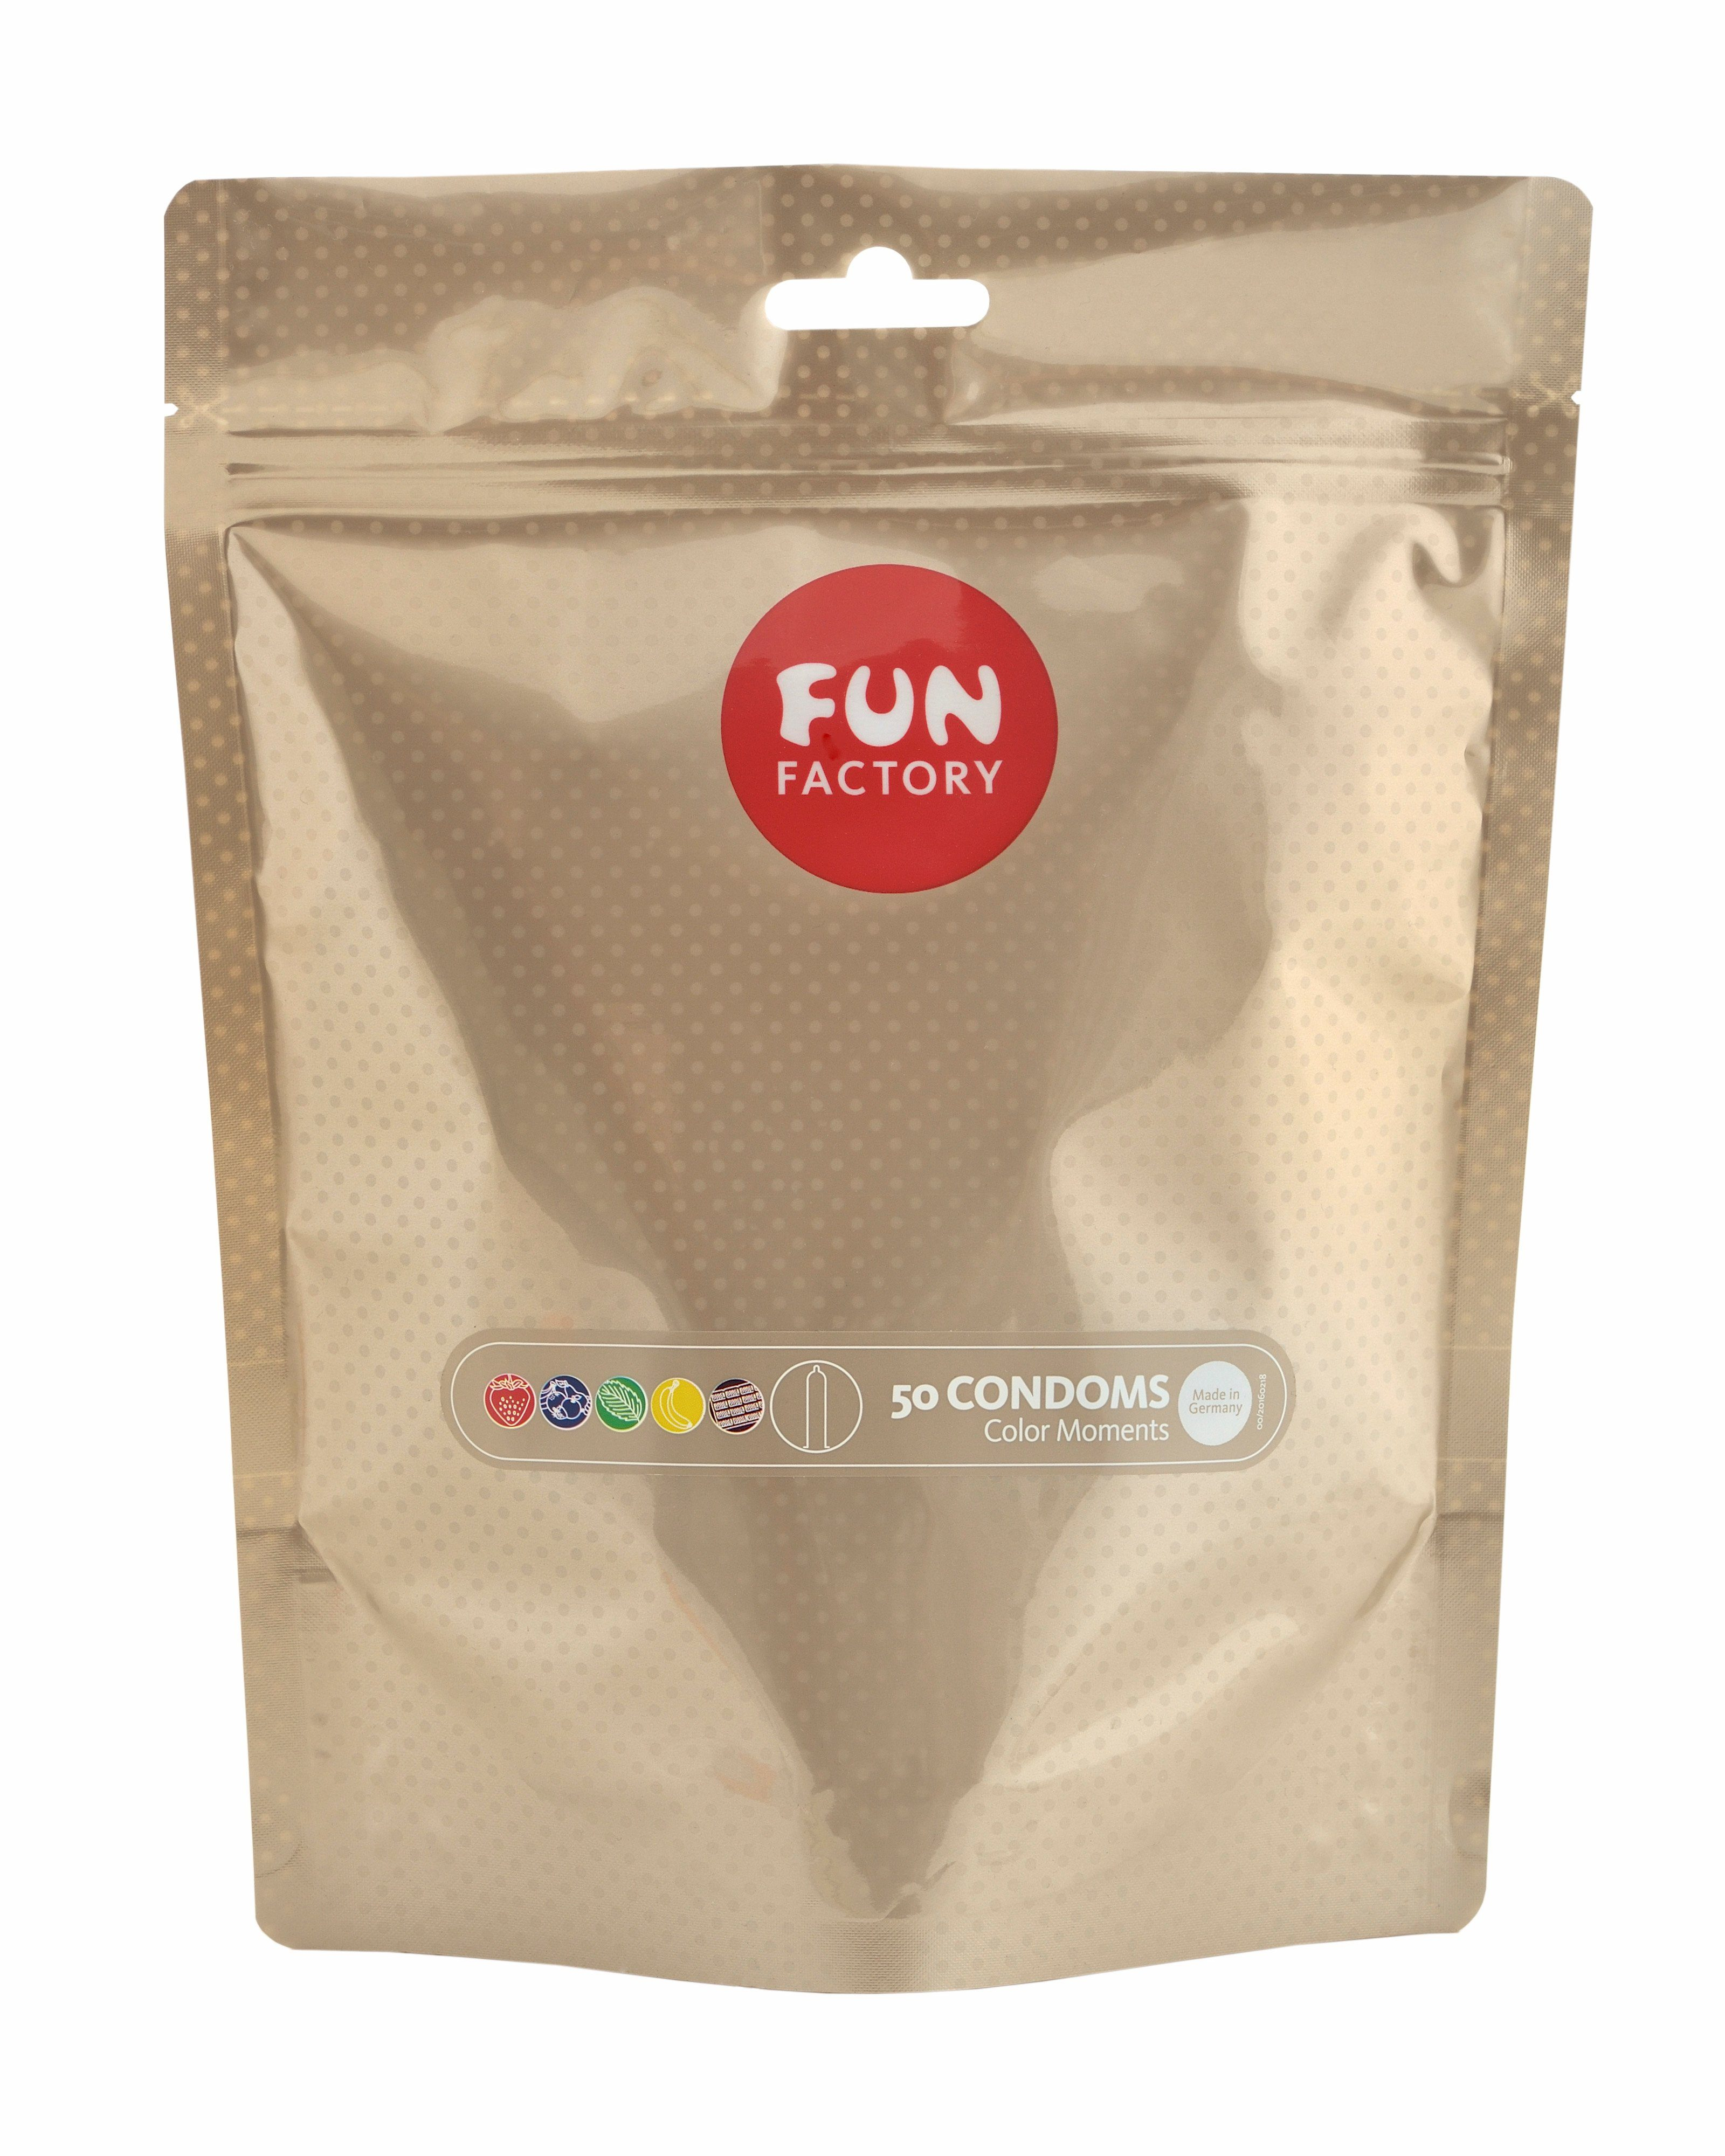 Fun Factory 50 Kondome made in Germany »Color Moments, 50er Beutel«